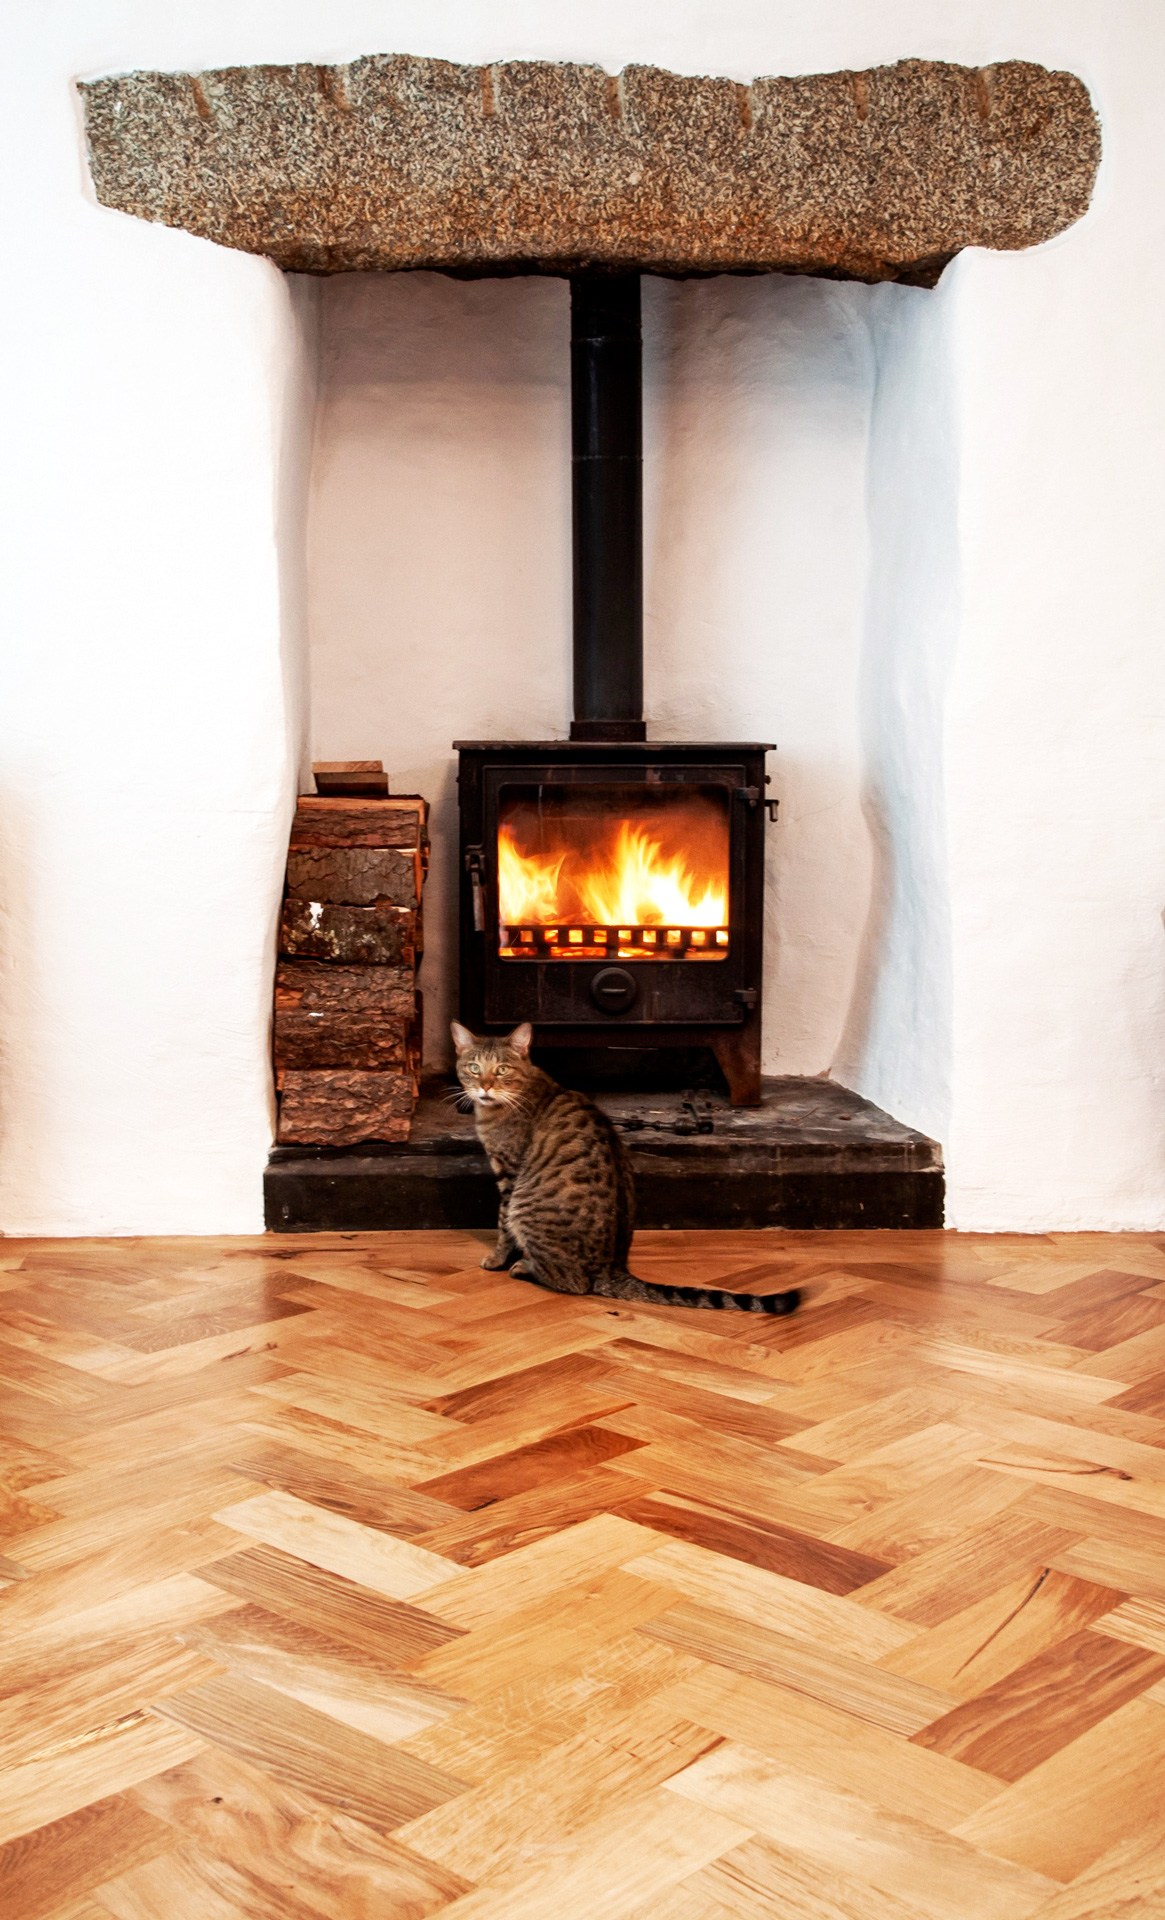 A new parquet flooring for the winter months